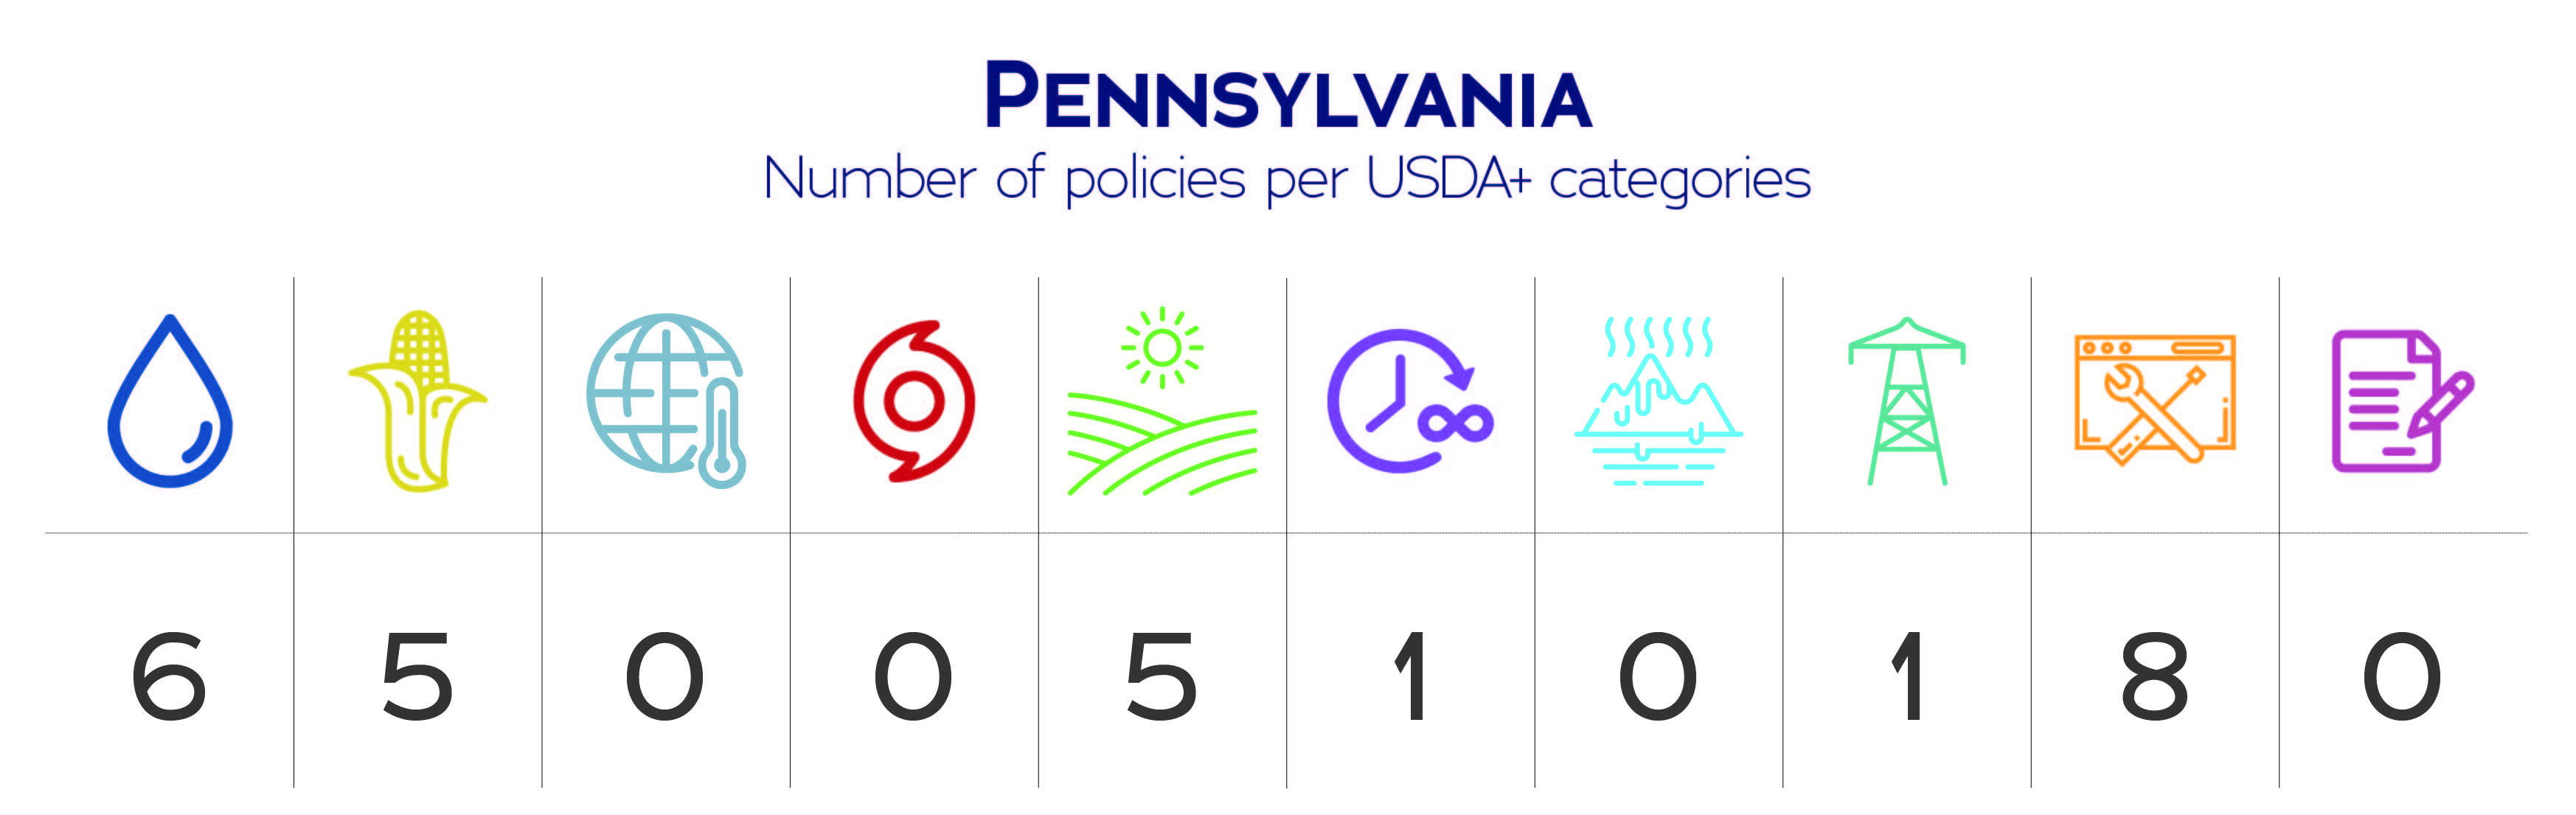 Pennsylvania USDA+ category data